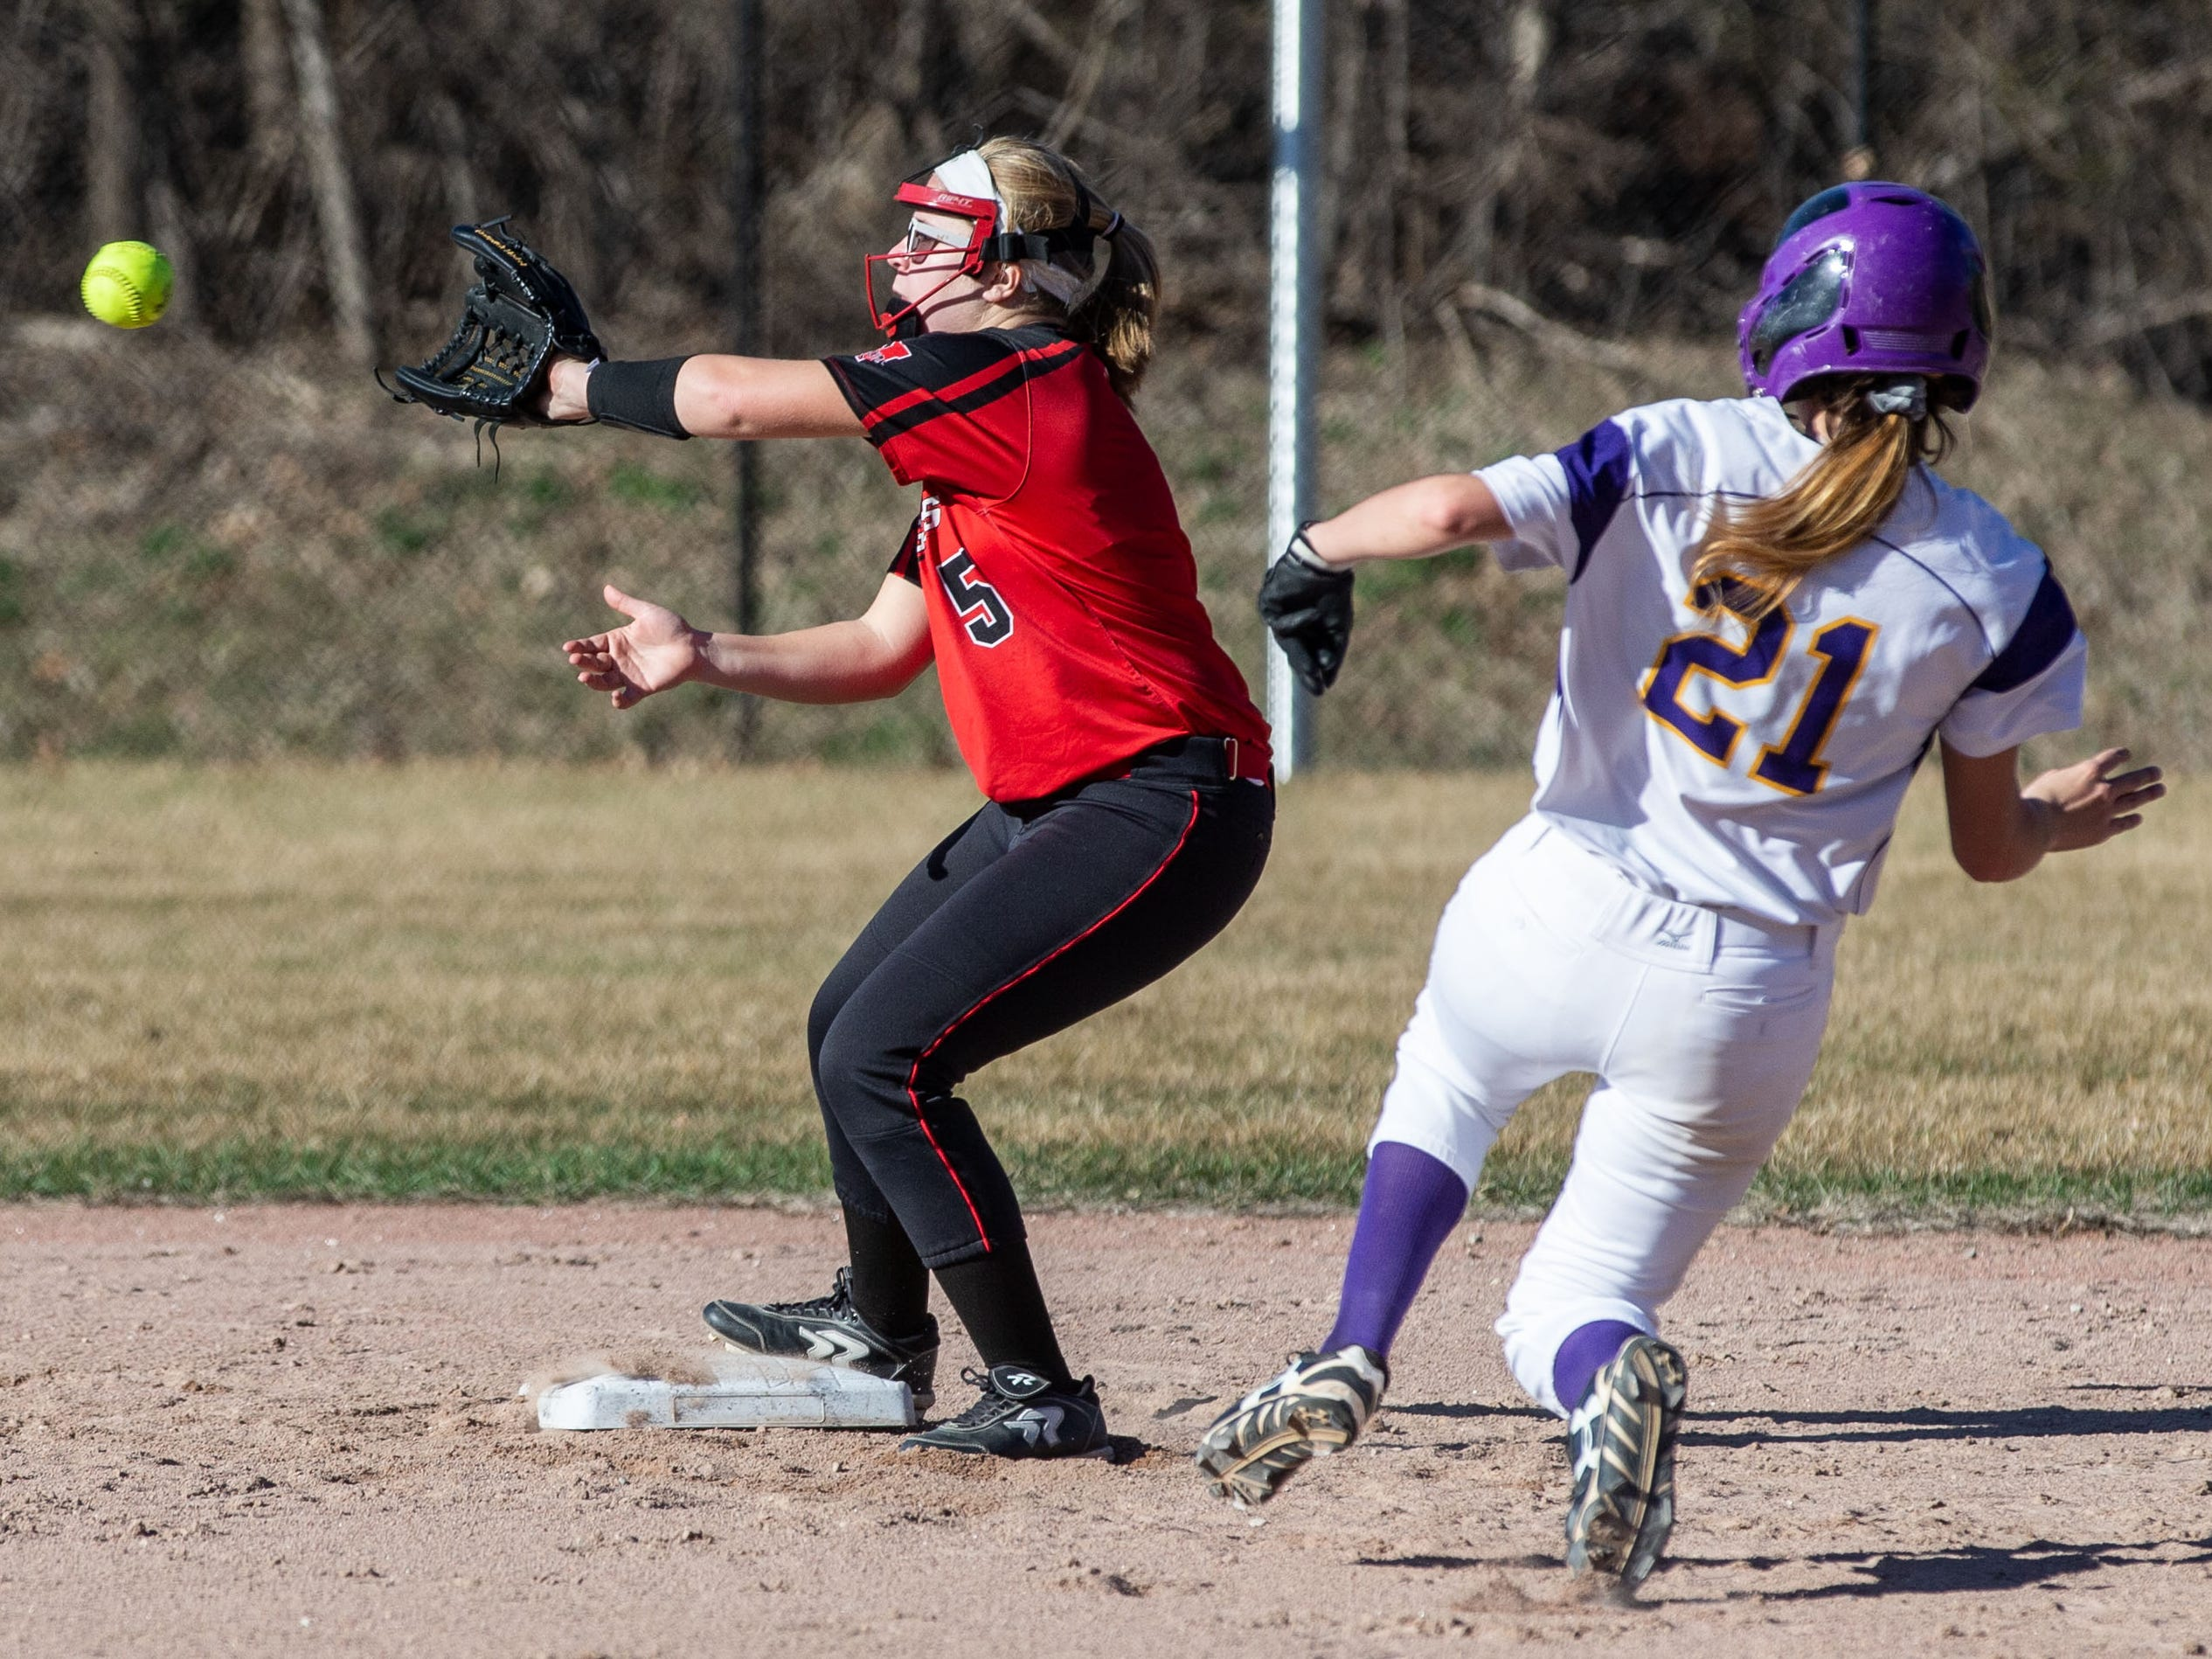 Sussex Hamilton's Maddie Claas (5) gets the force at second during the game at Oconomowoc on Monday, April 8, 2019.